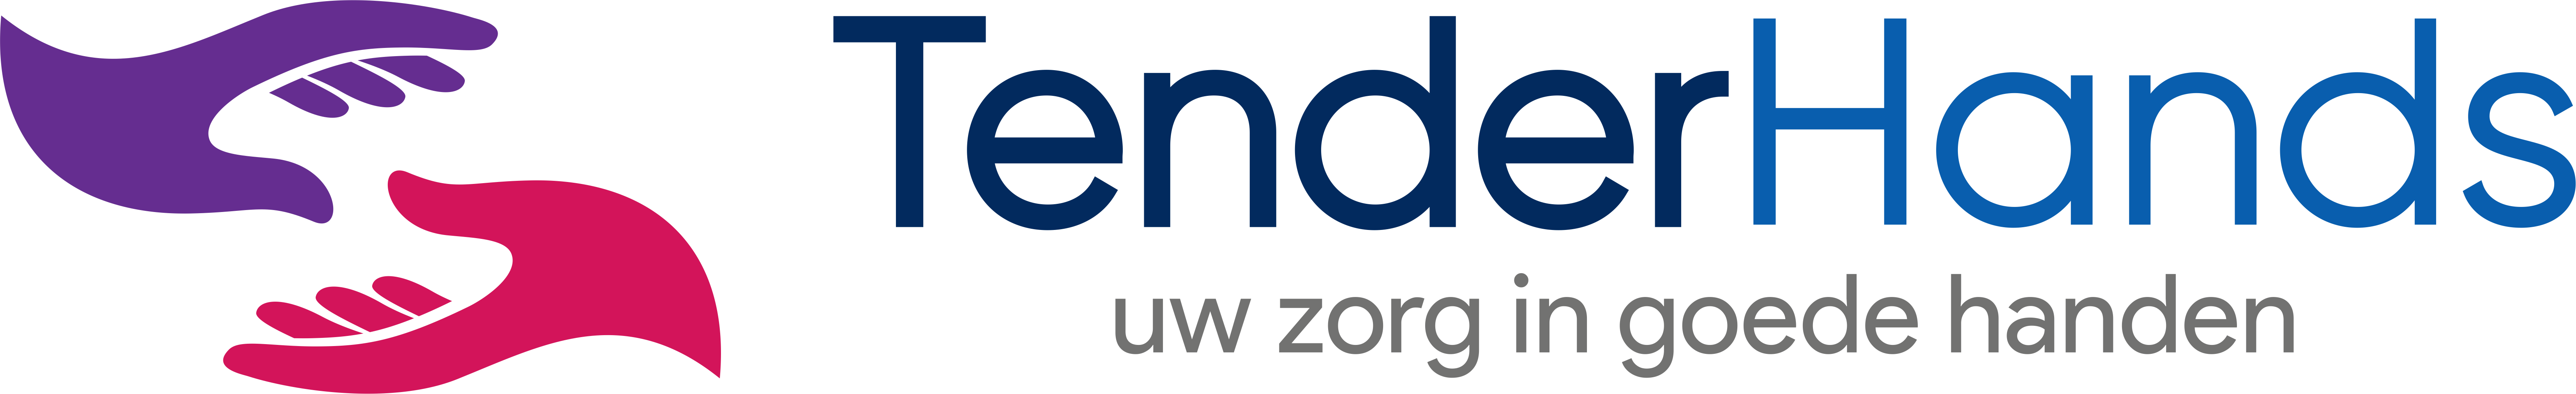 logo-with-tagline-png